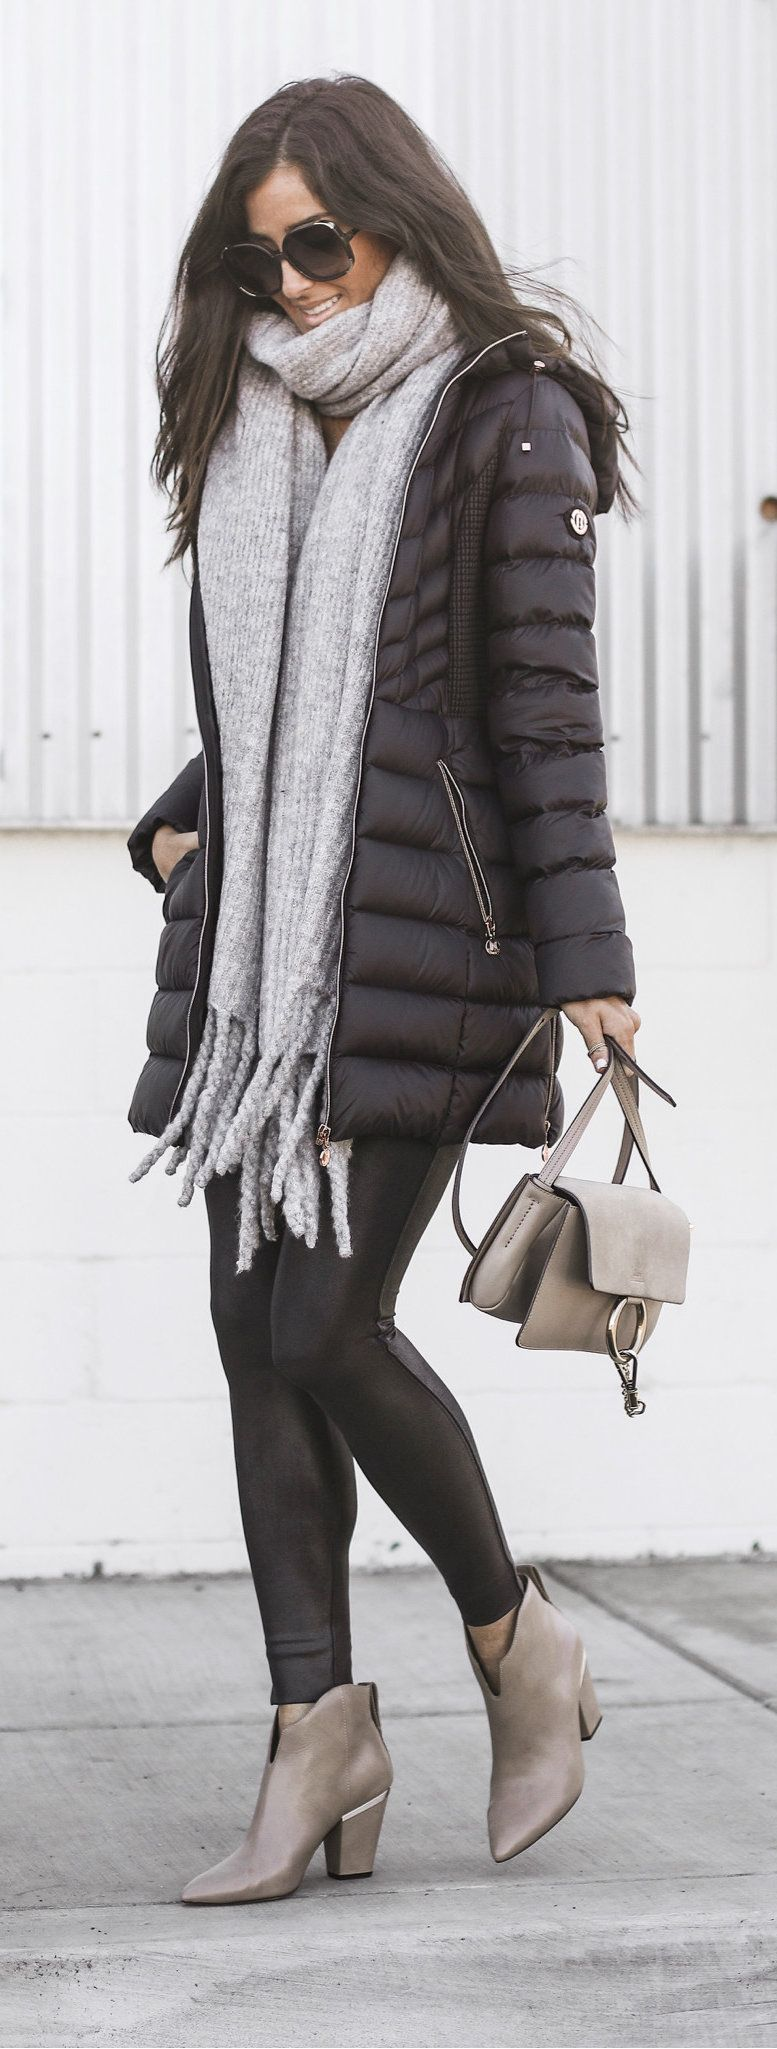 black zip-up bubble jacket and fringe gray scarf